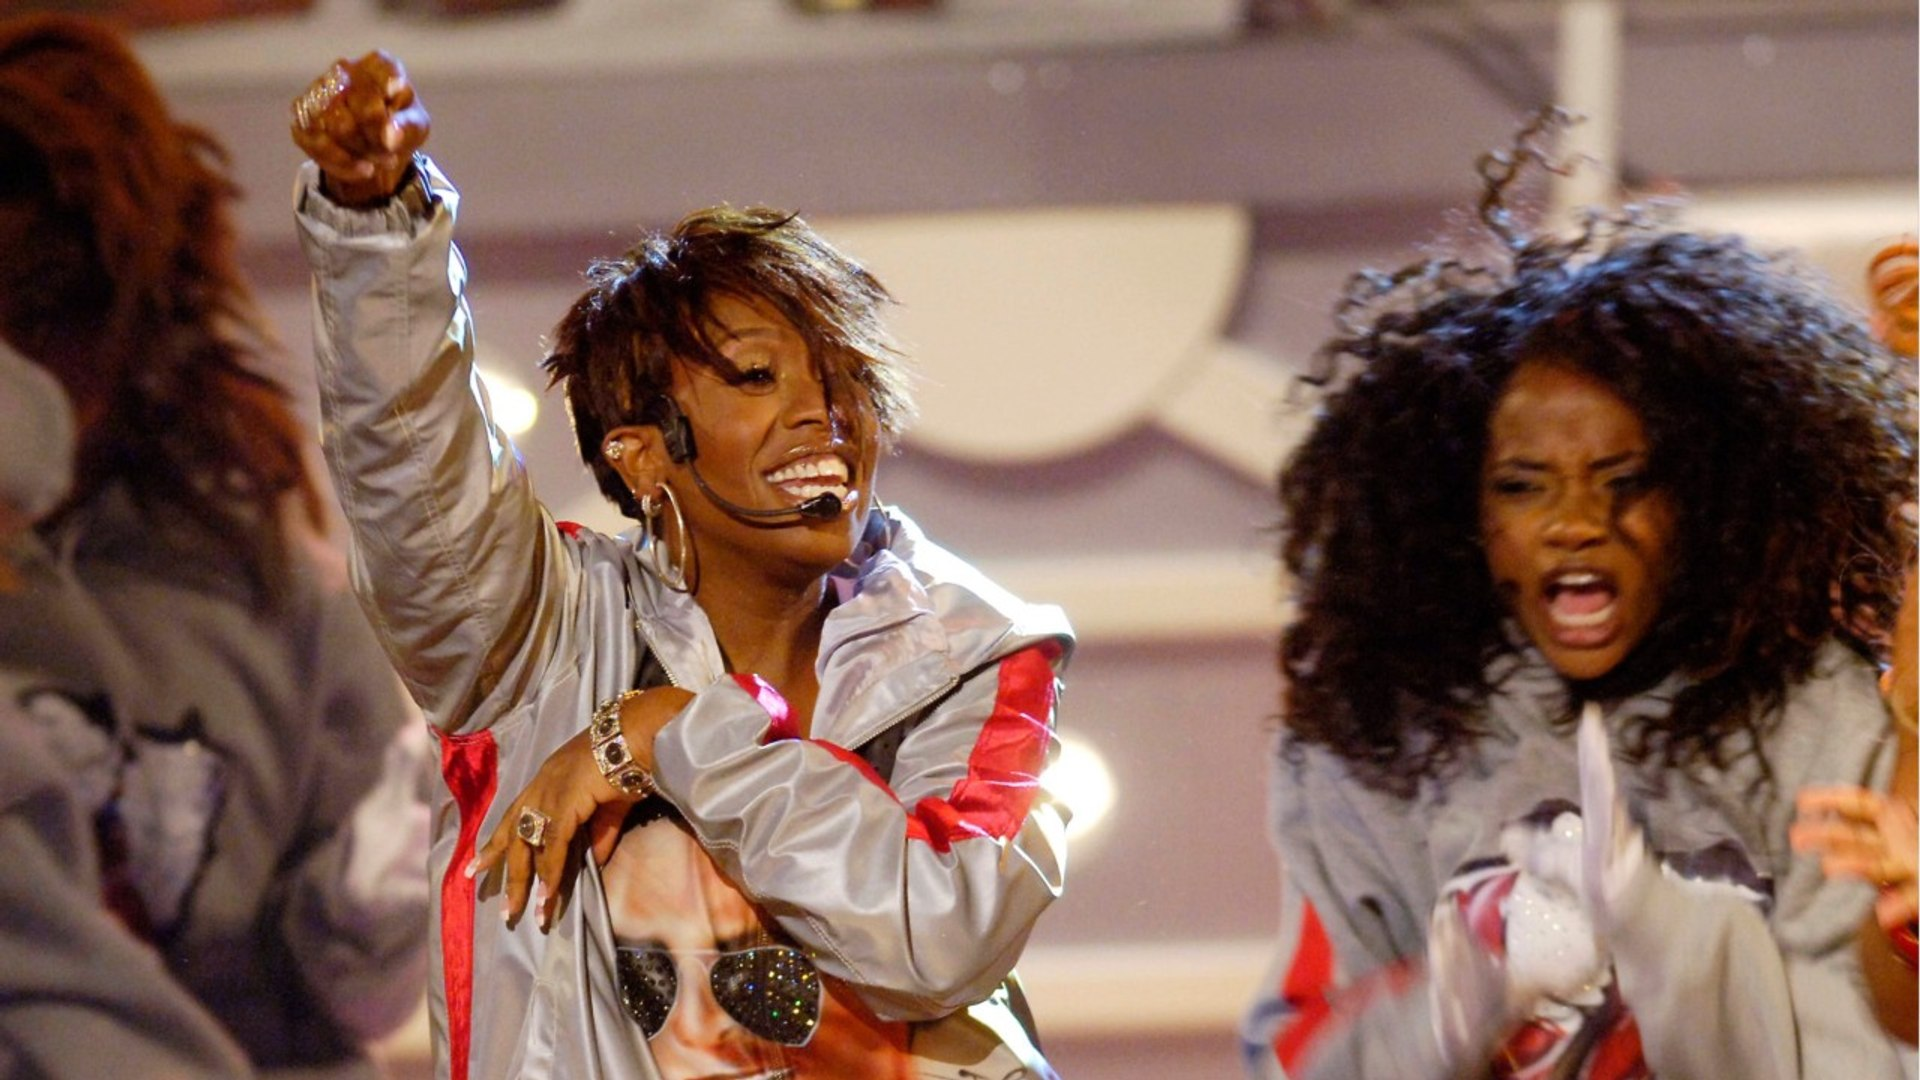 Missy Elliot, Alex Lacamoire And Justin Timberlake Receive Doctor of Music Degrees